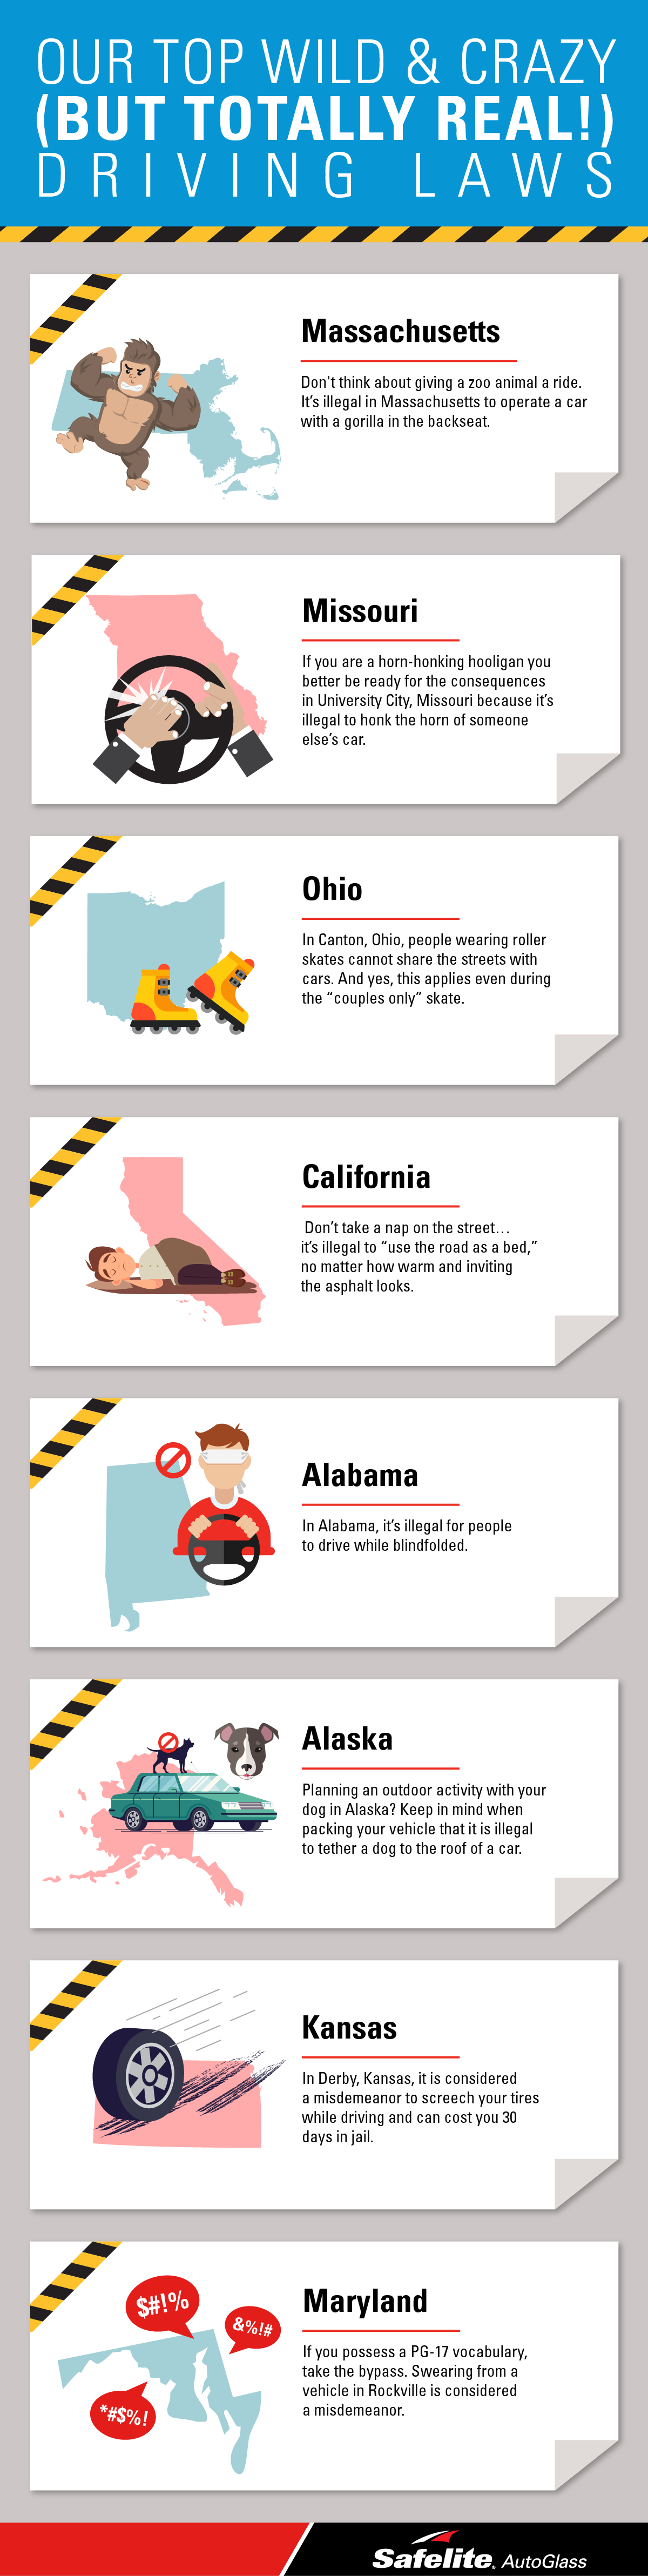 Though April Fool's Day did just pass, we're not joking around! These are some of the most interesting driving laws.